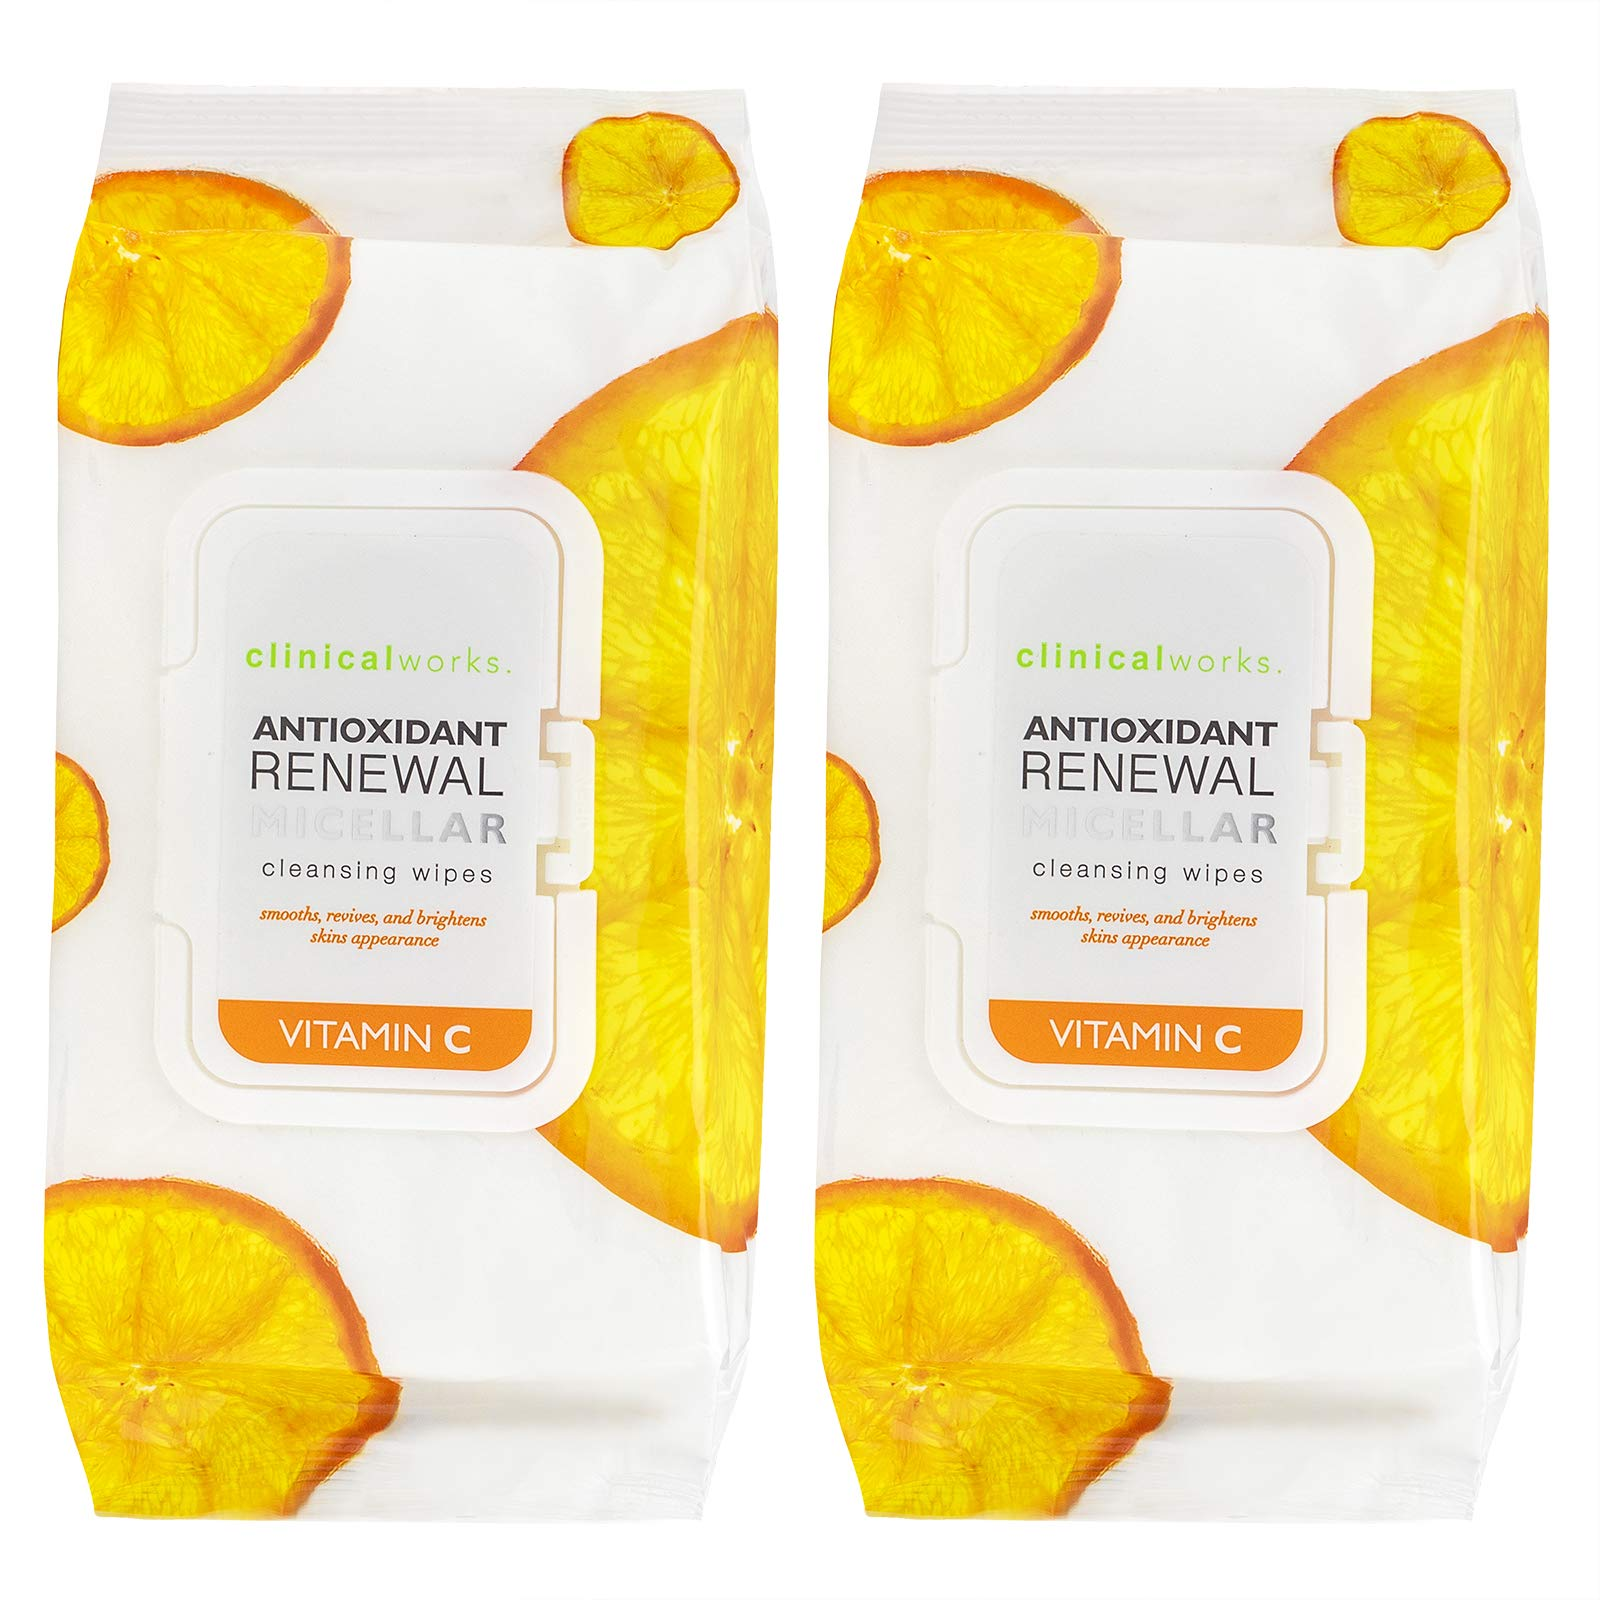 Clinical Works - 2 Pack (60 Count Each) Vitamin C Antioxidant Micellar Cleansing Wipes